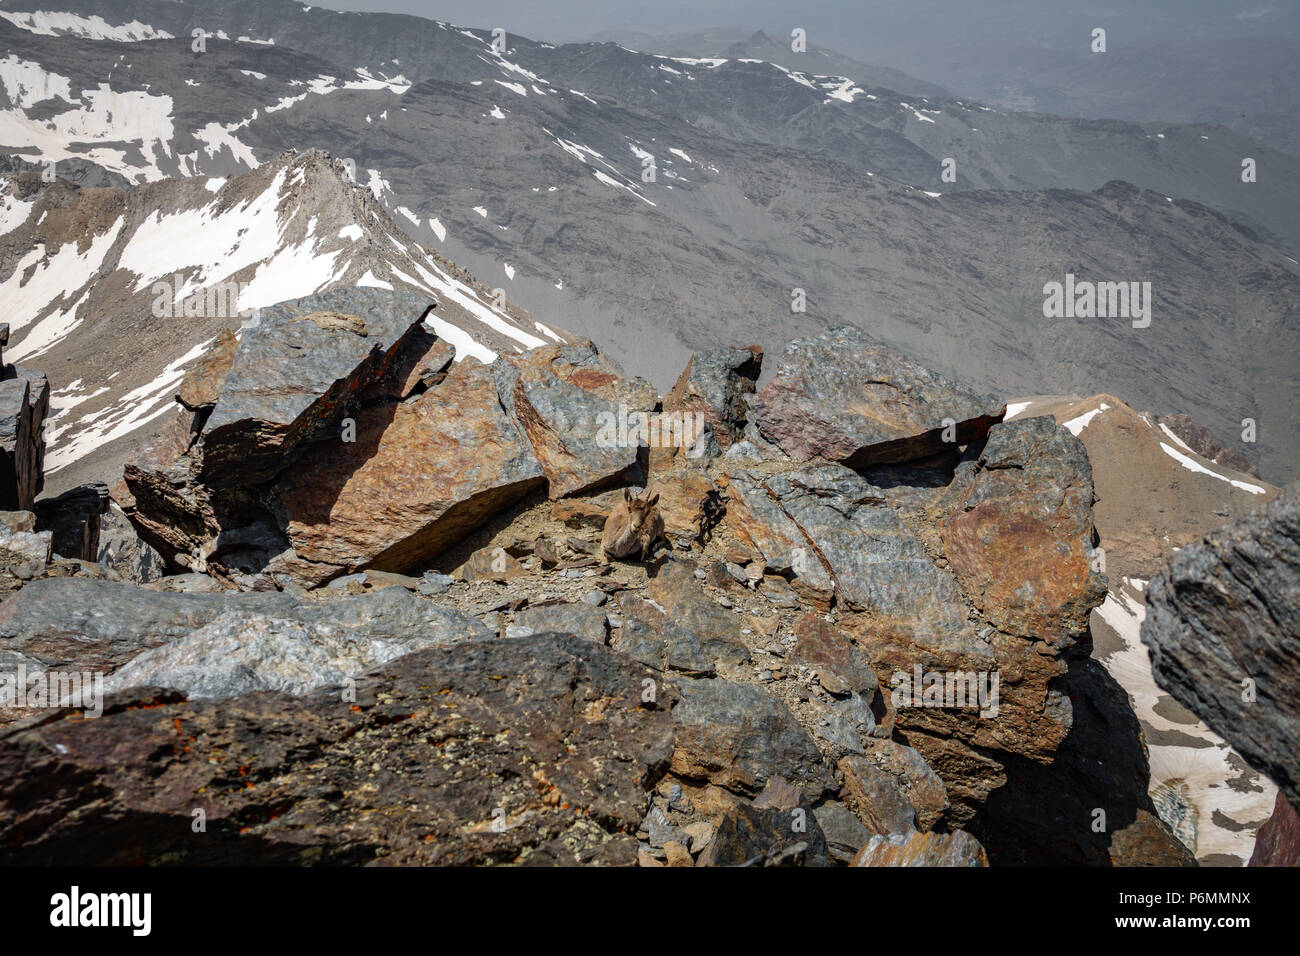 Mountain goat resting on top of mountain peak - Stock Image